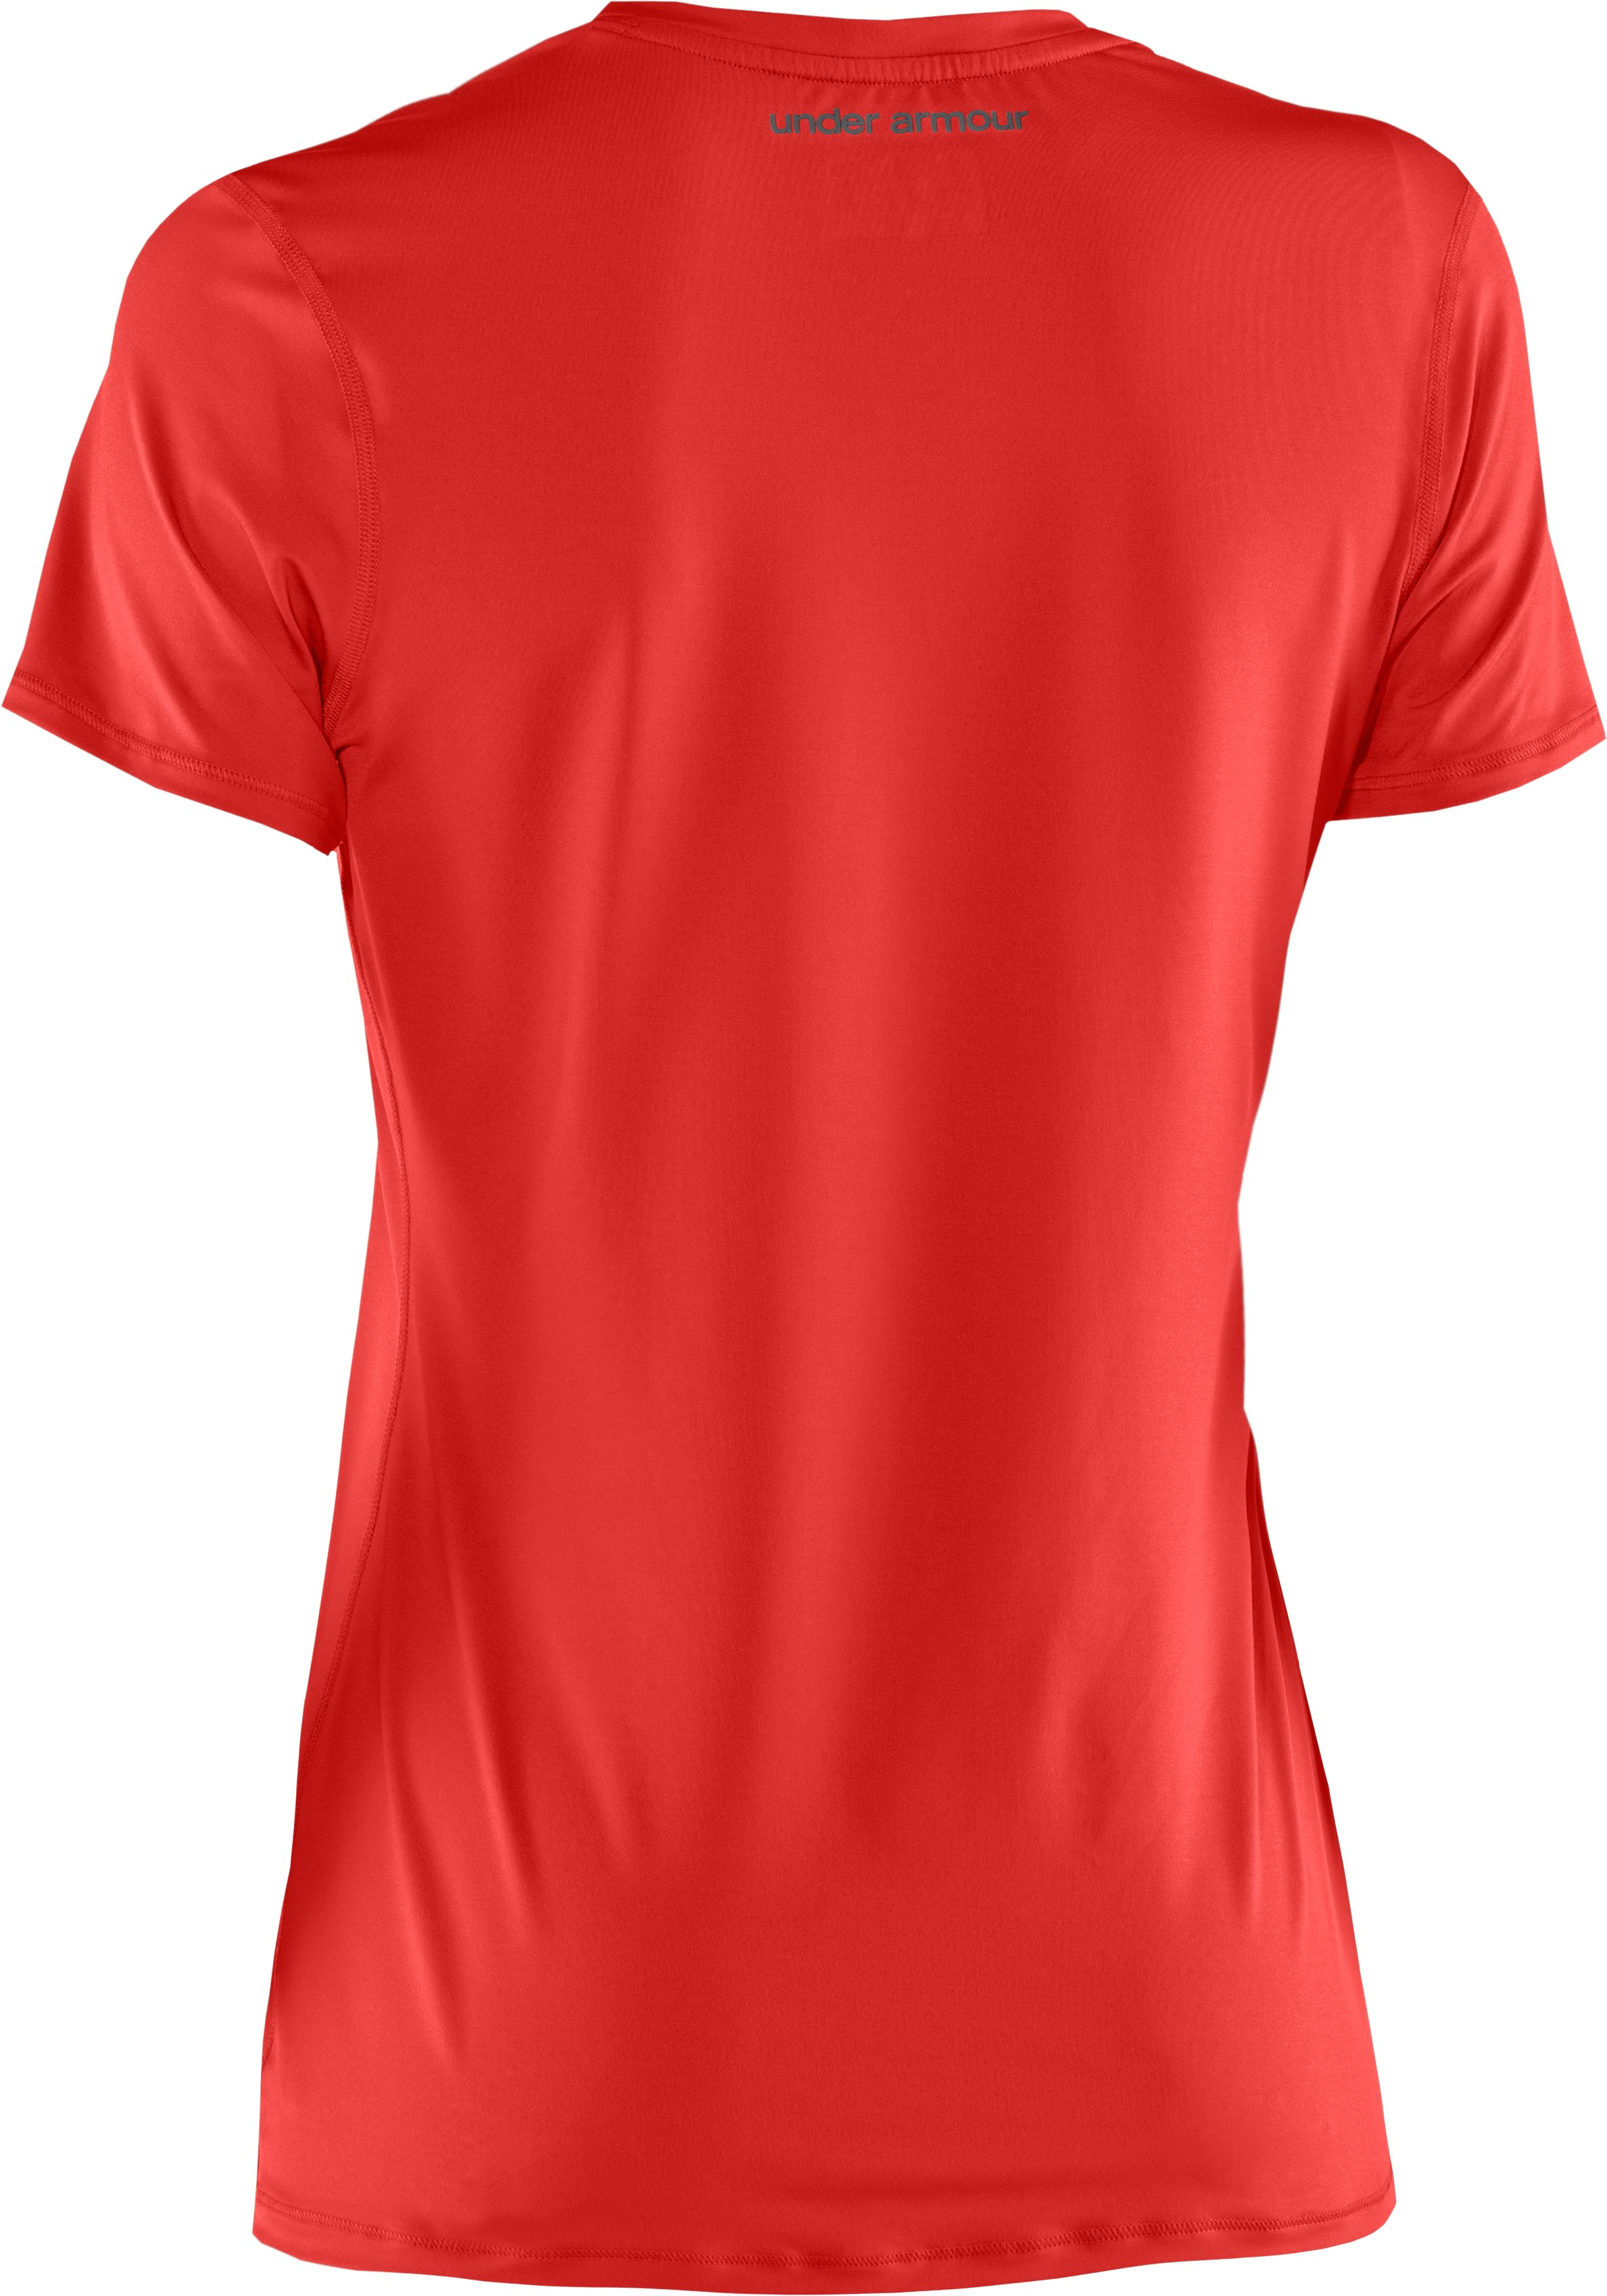 Women's HeatGear® Sonic Short Sleeve, Fire,